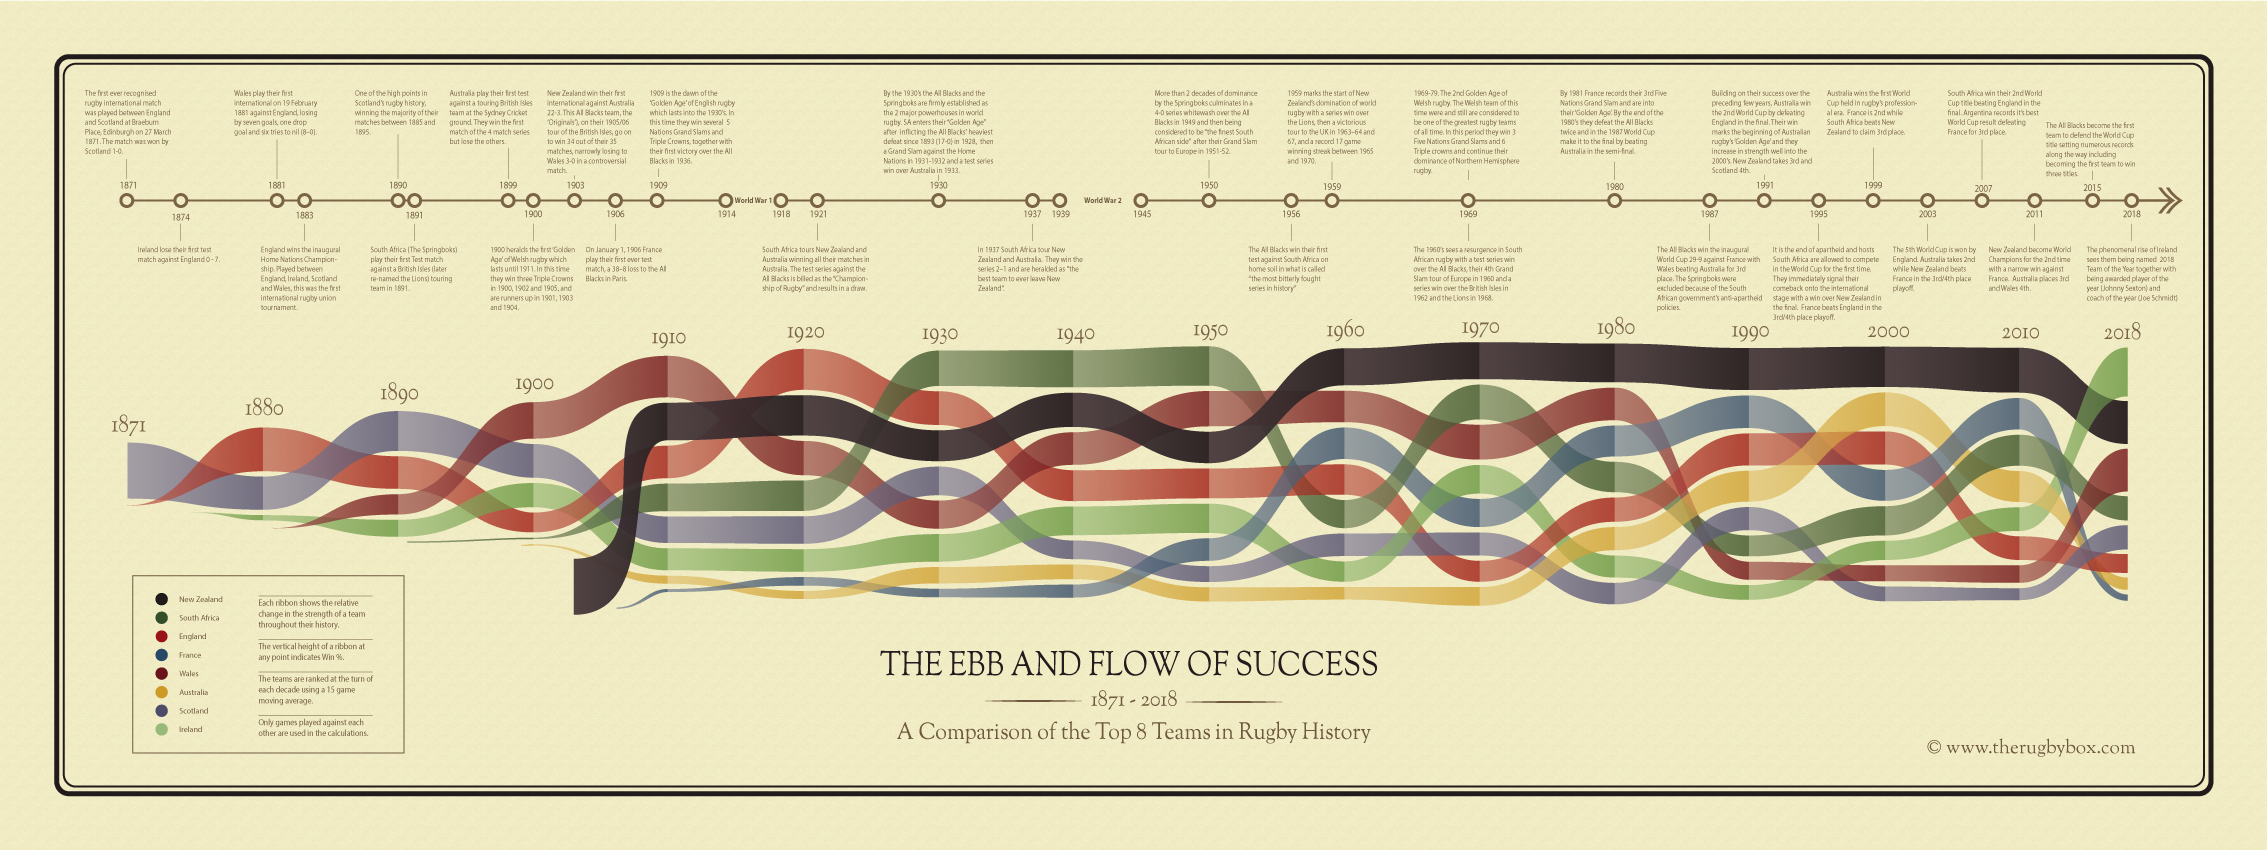 Special Collectors Edition with Ebb & Flow of Success